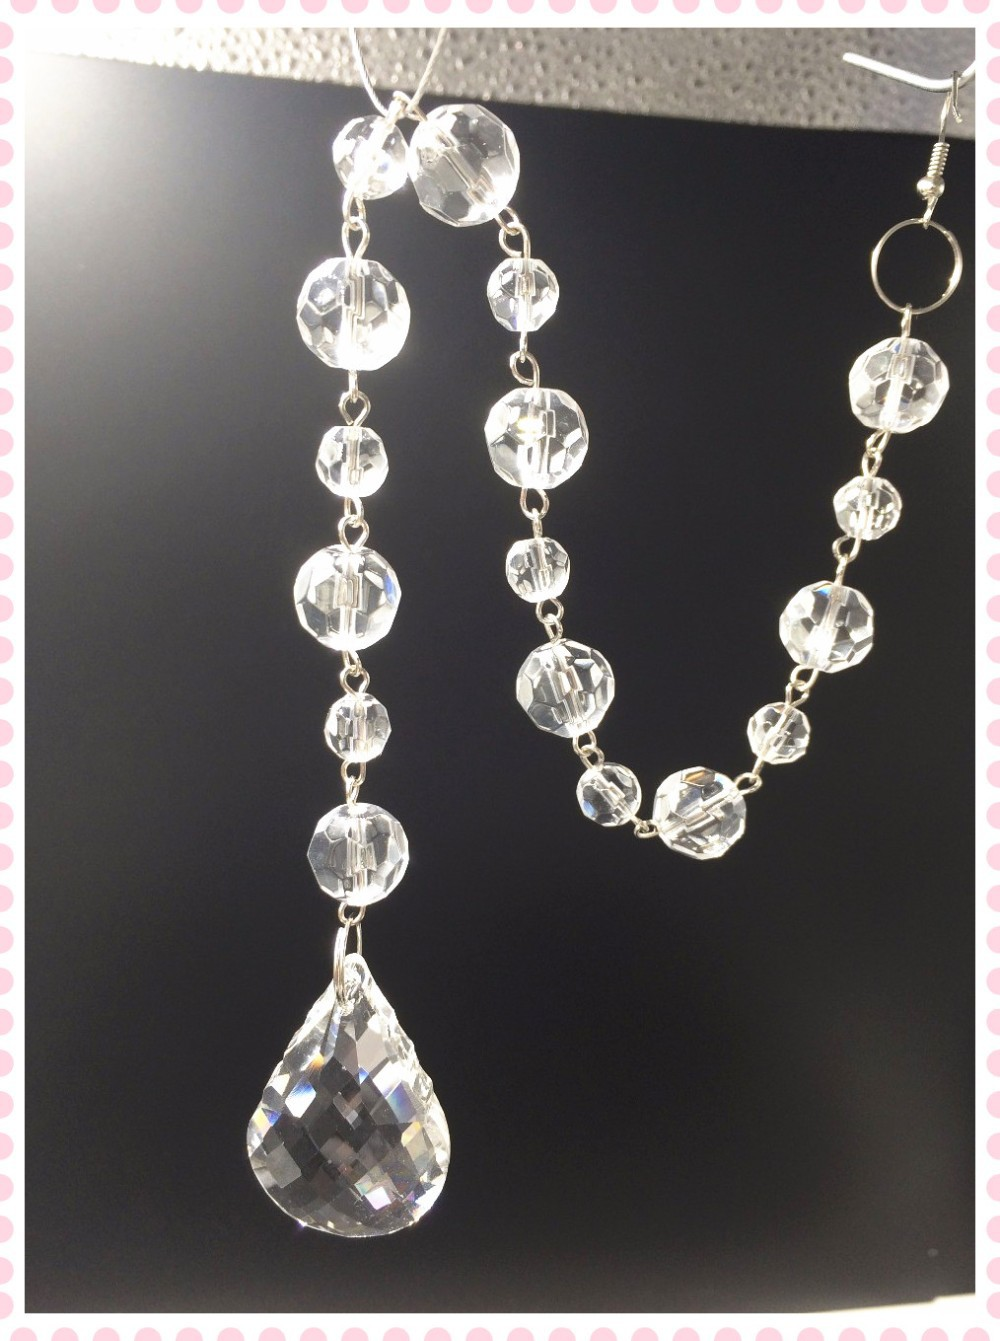 180Chains Crystal Chandelier Parts 30cm Faceted Ball Strand Garland + 38mm  Pendant Crystal Chain Room Chains